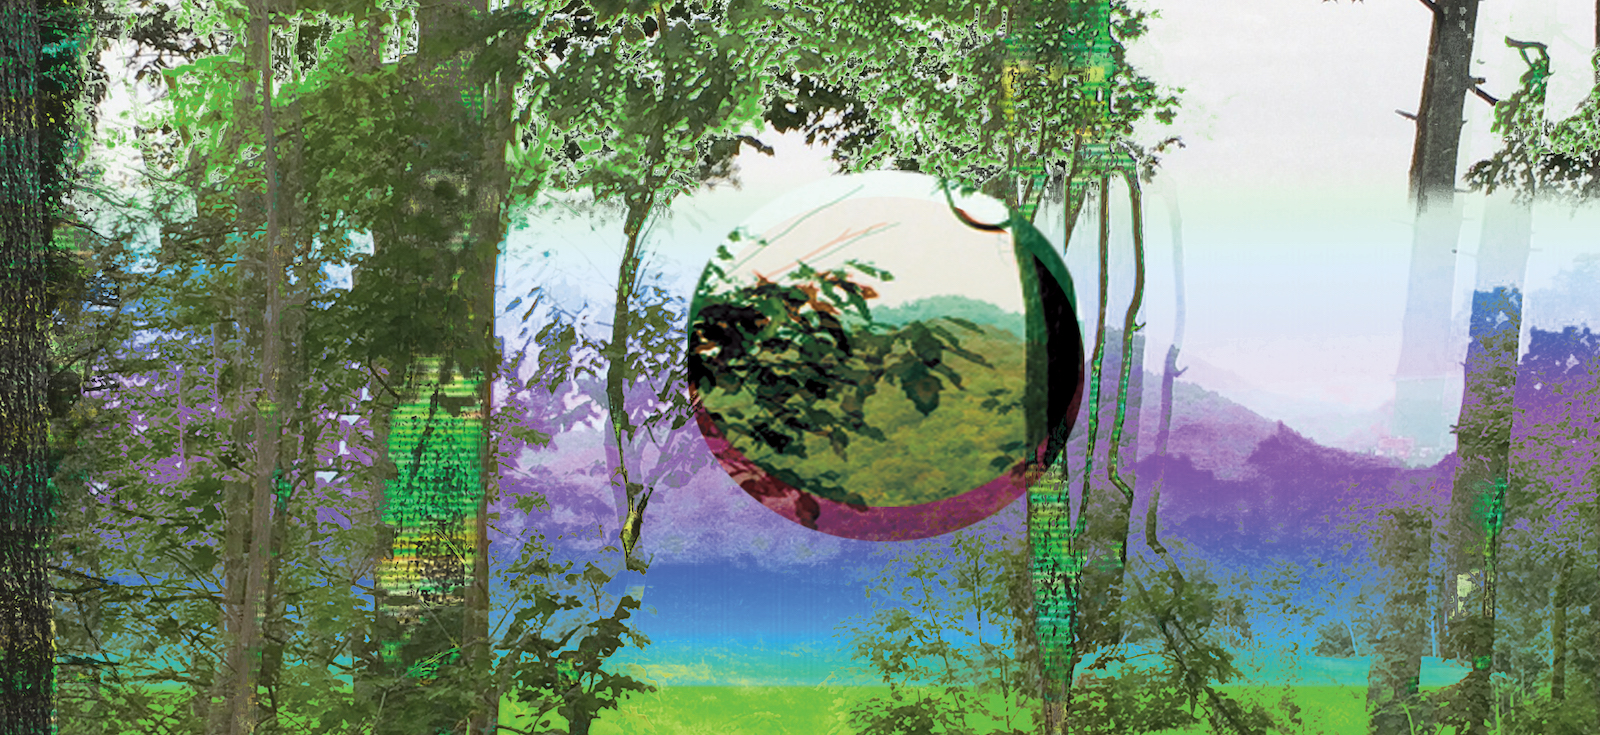 A digital landscape of colorful trees with a transparent sphere in the center.